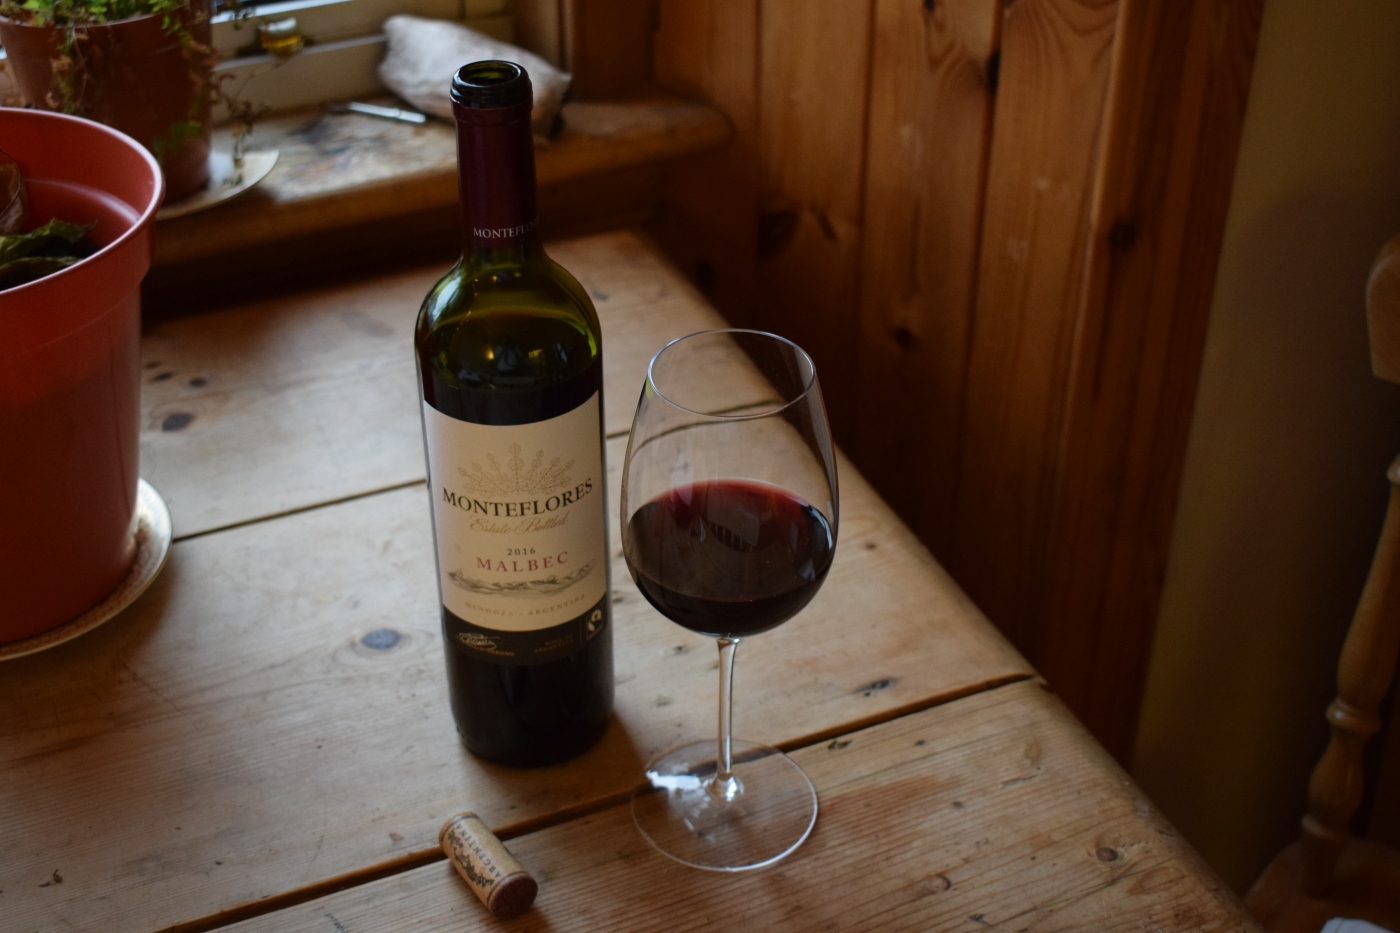 Monflores Malbec, 2016 - Marks and Spencer